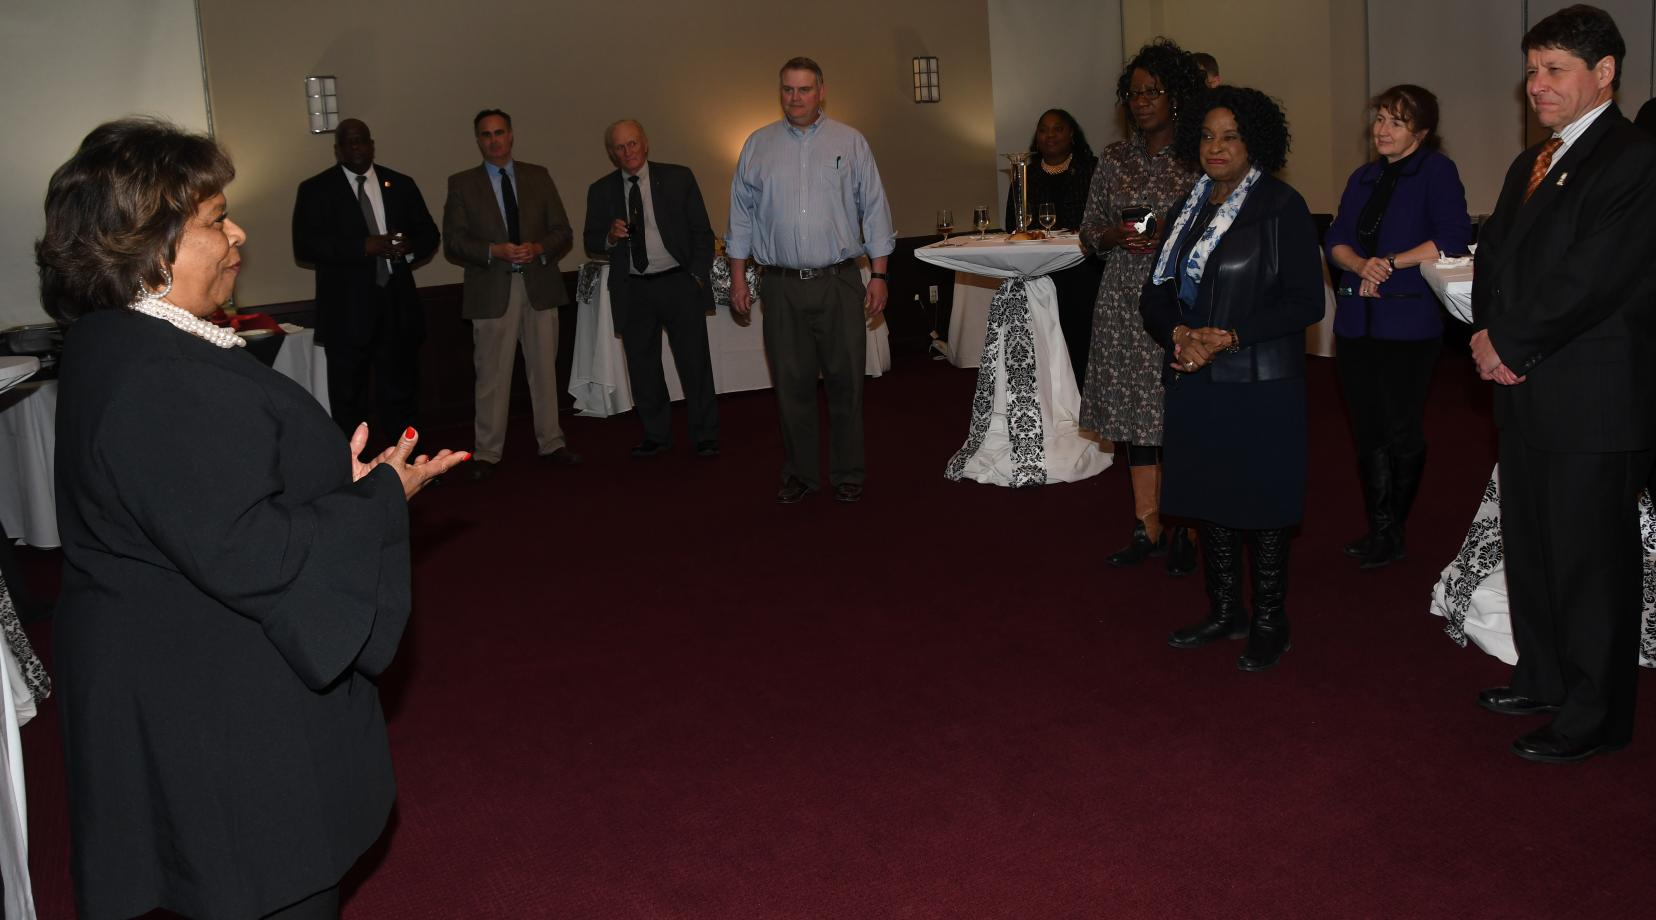 Delaware State University President Wilma Mishoe speaks to Delaware lawmakers during a Jan.22 Legislators Reception on campus